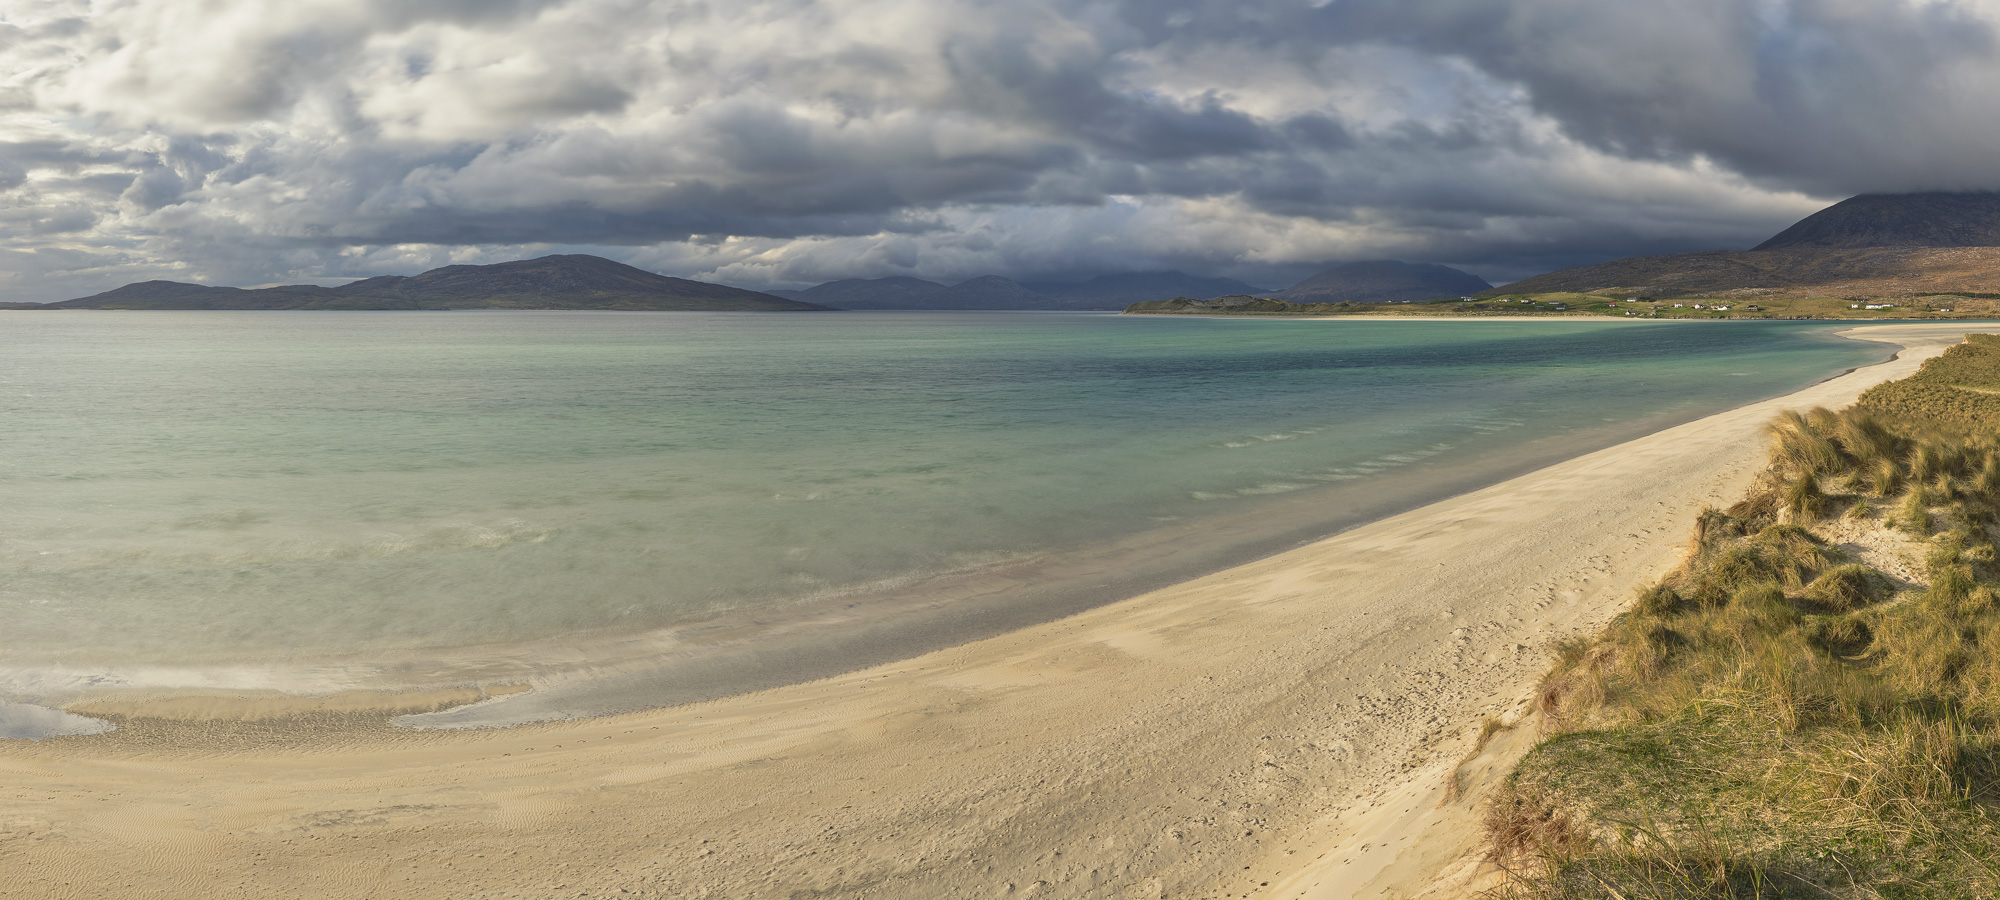 A panoramic view of Seilebost's immense and pristine sand beach at Luskentyre bay on the Isle of Harris.